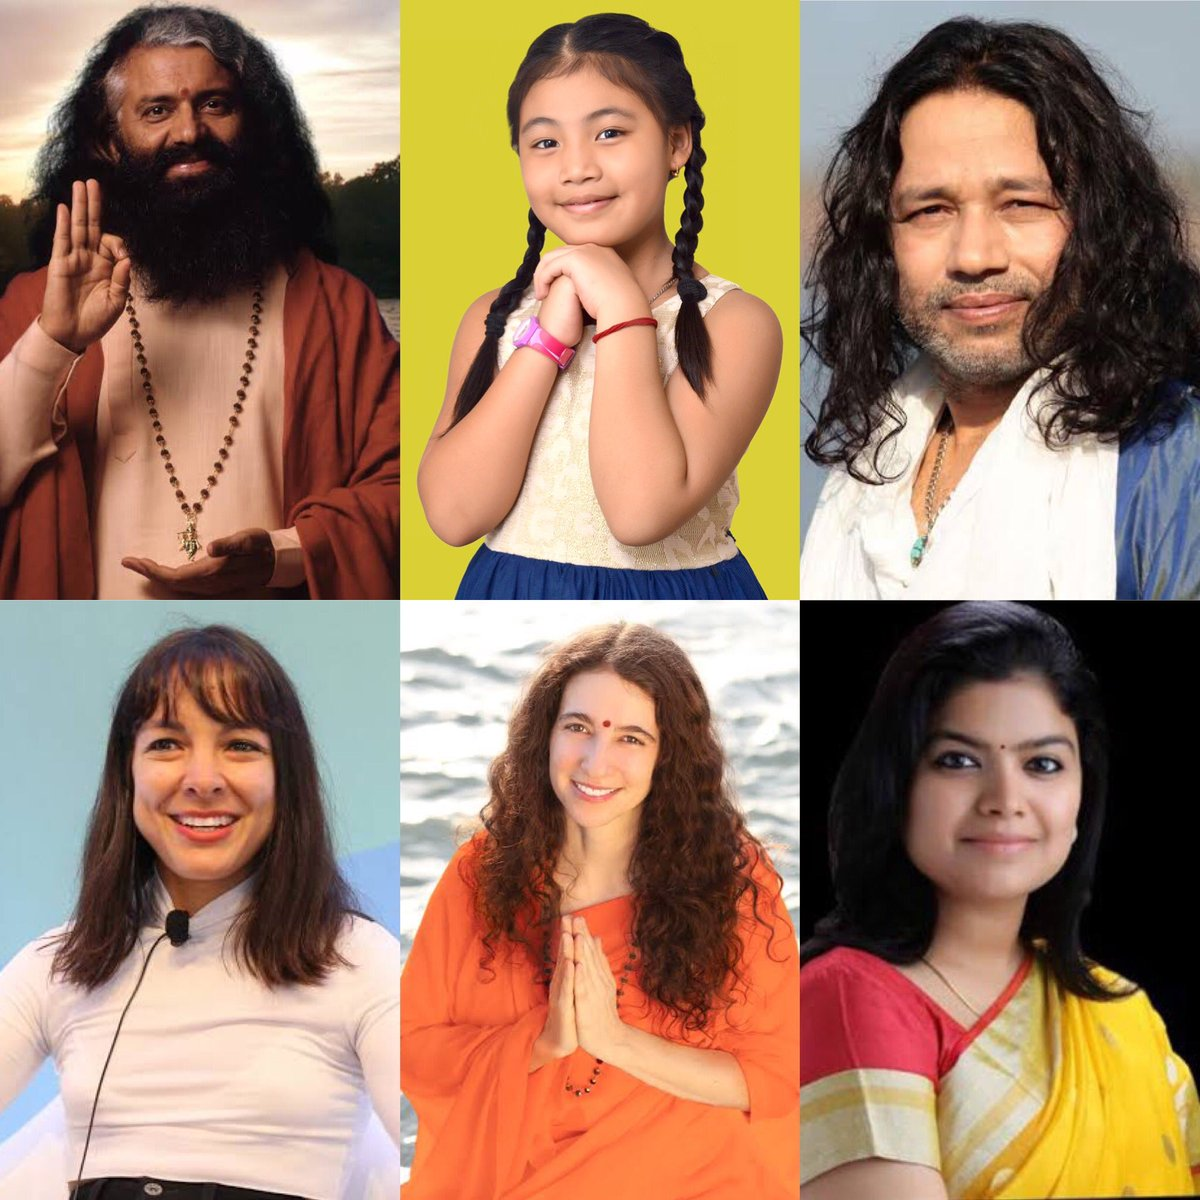 Will address at 'International Youth Day 2020' on 12th August at 5.30 pm hosting by The Global Interfaith WASH Alliance (@wash_alliance) launched by @UNICEF & @UNFPAIndia along with HH @PujyaSwamiji, @KailashKher, @poonam_mahajan, @SadhviBhagawati & @twinmiki. #ClimateActionNow https://t.co/DFs4LvQQde